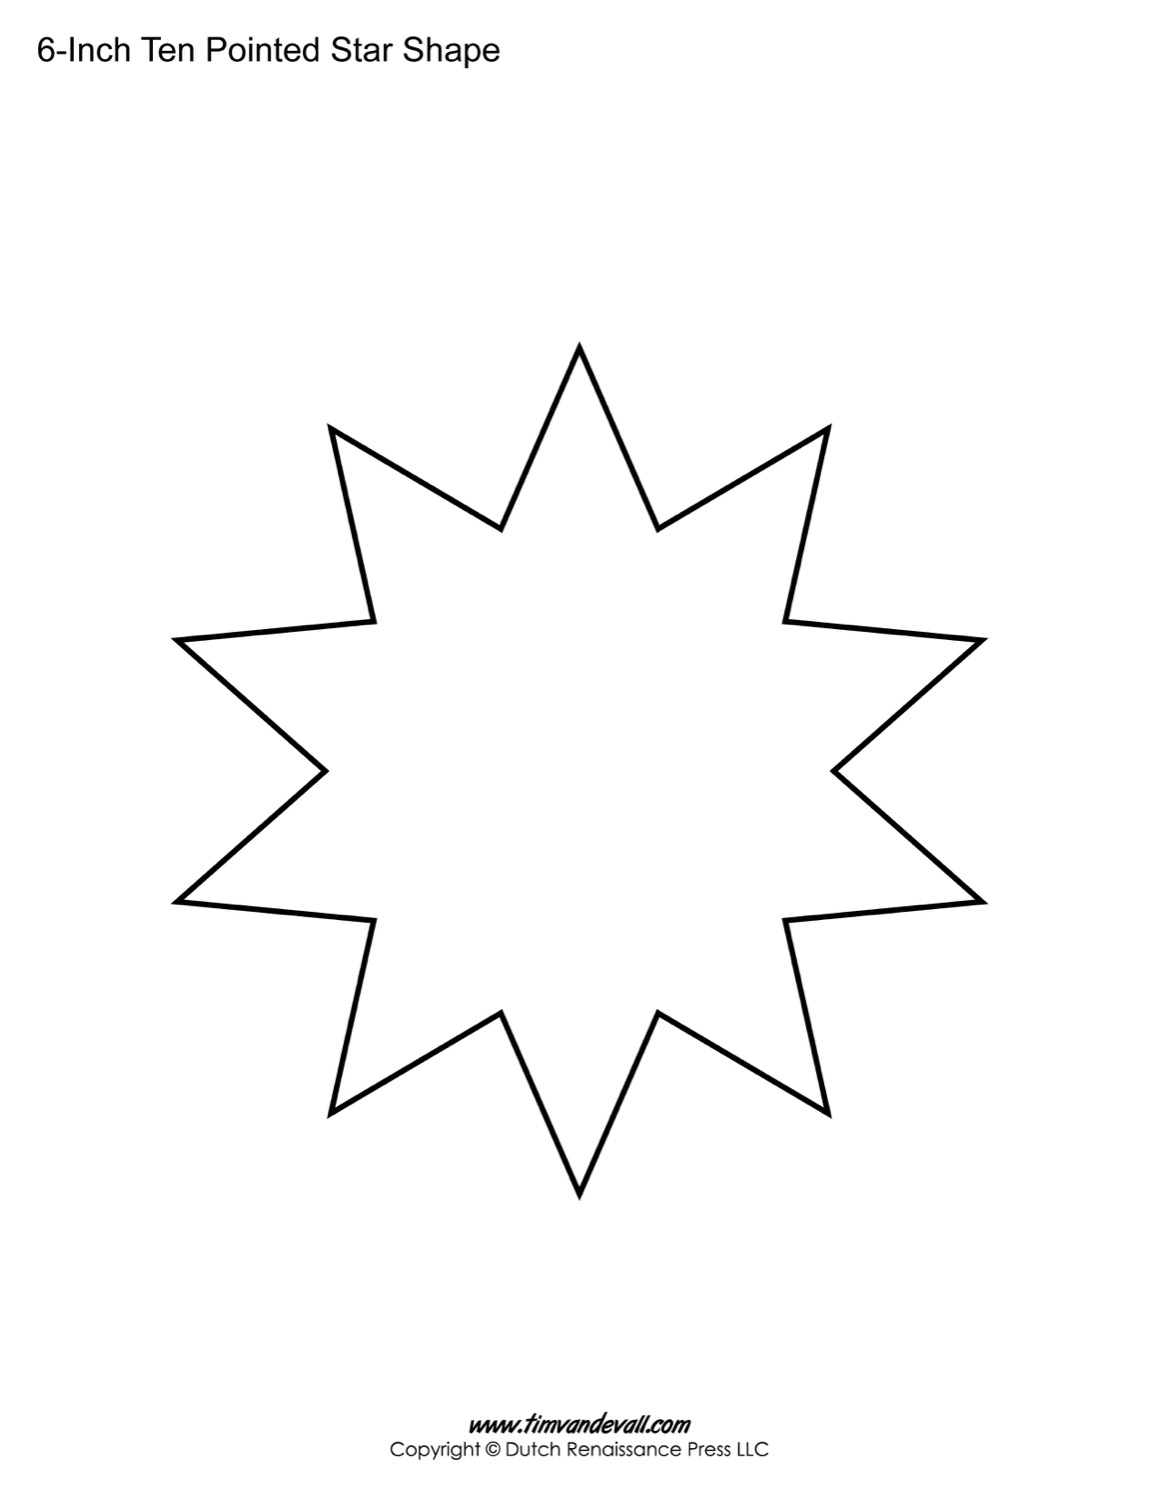 blank ten pointed star shapes